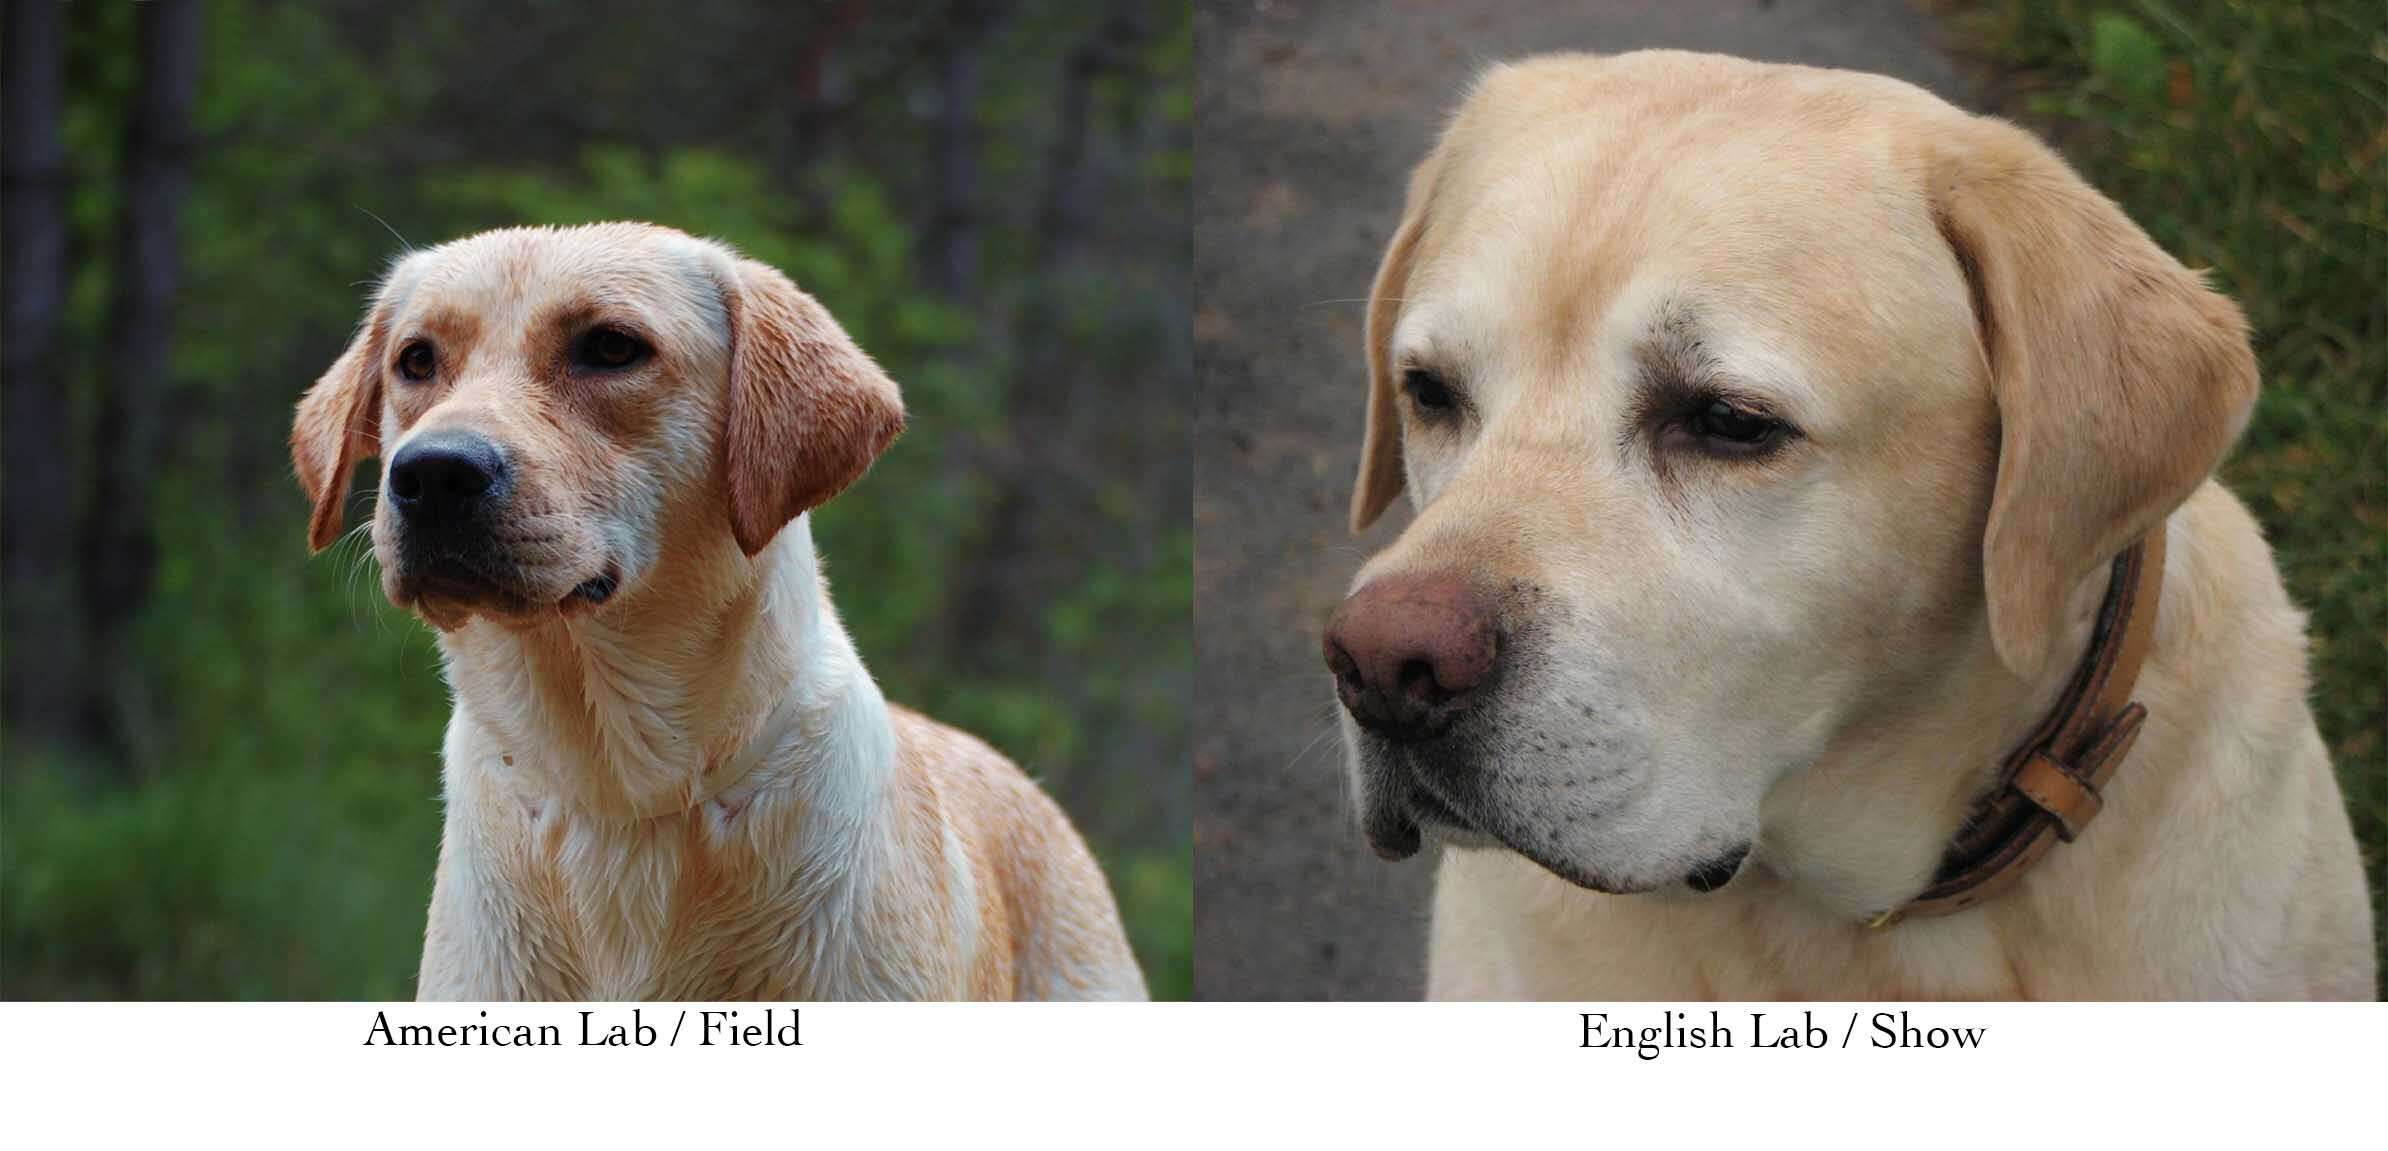 American Lab on the left with narrower face and slighter body. English lab on right with wider face and snout.